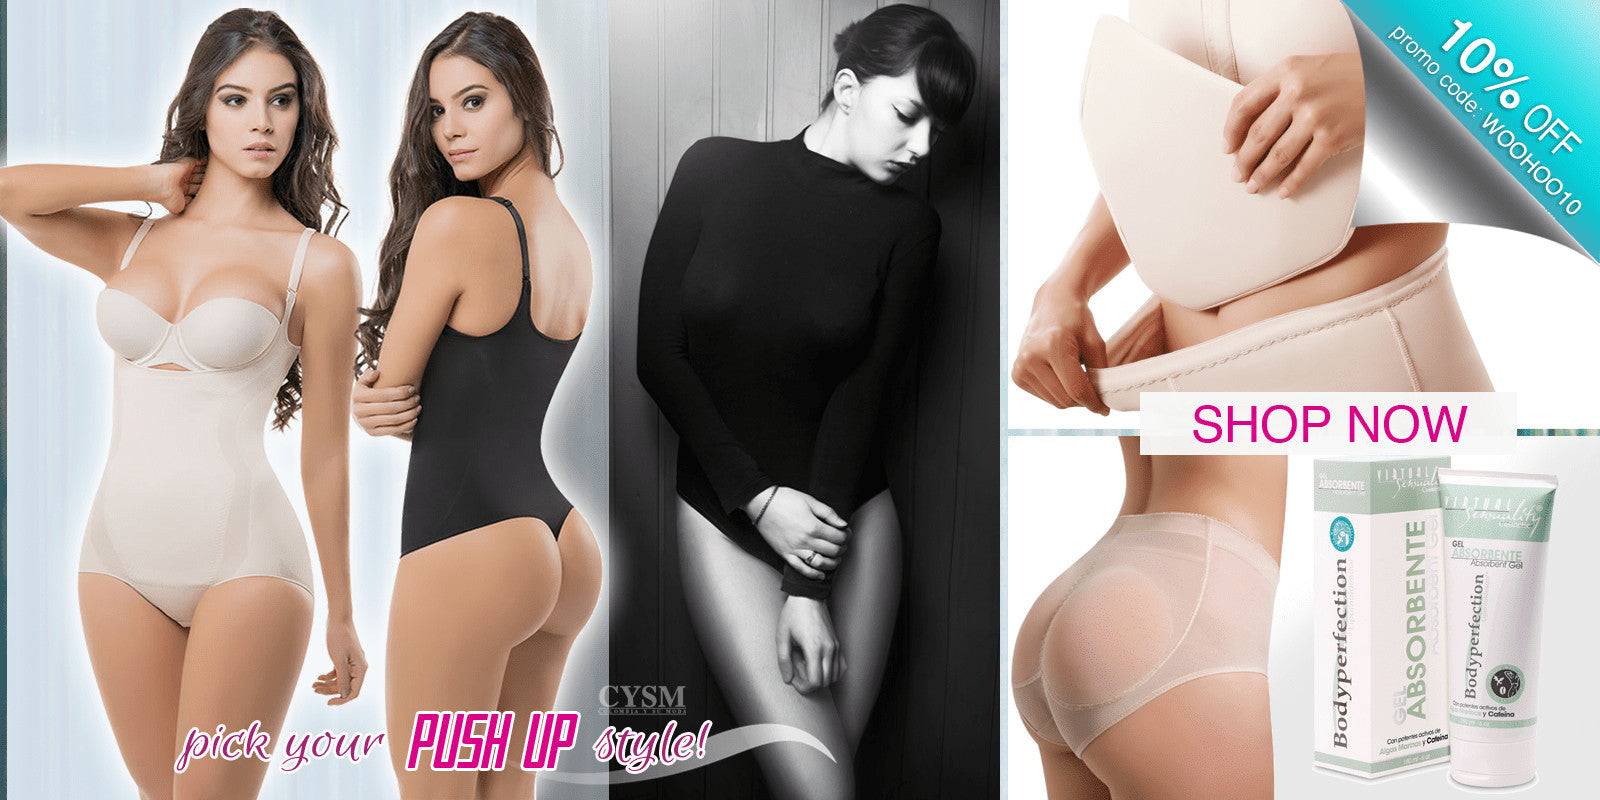 LAPG-COLOMBIAN-CYSM-VIRTUAL-SENSUALITY-PUSH-UP-SHAPERS-POST-SURGERY